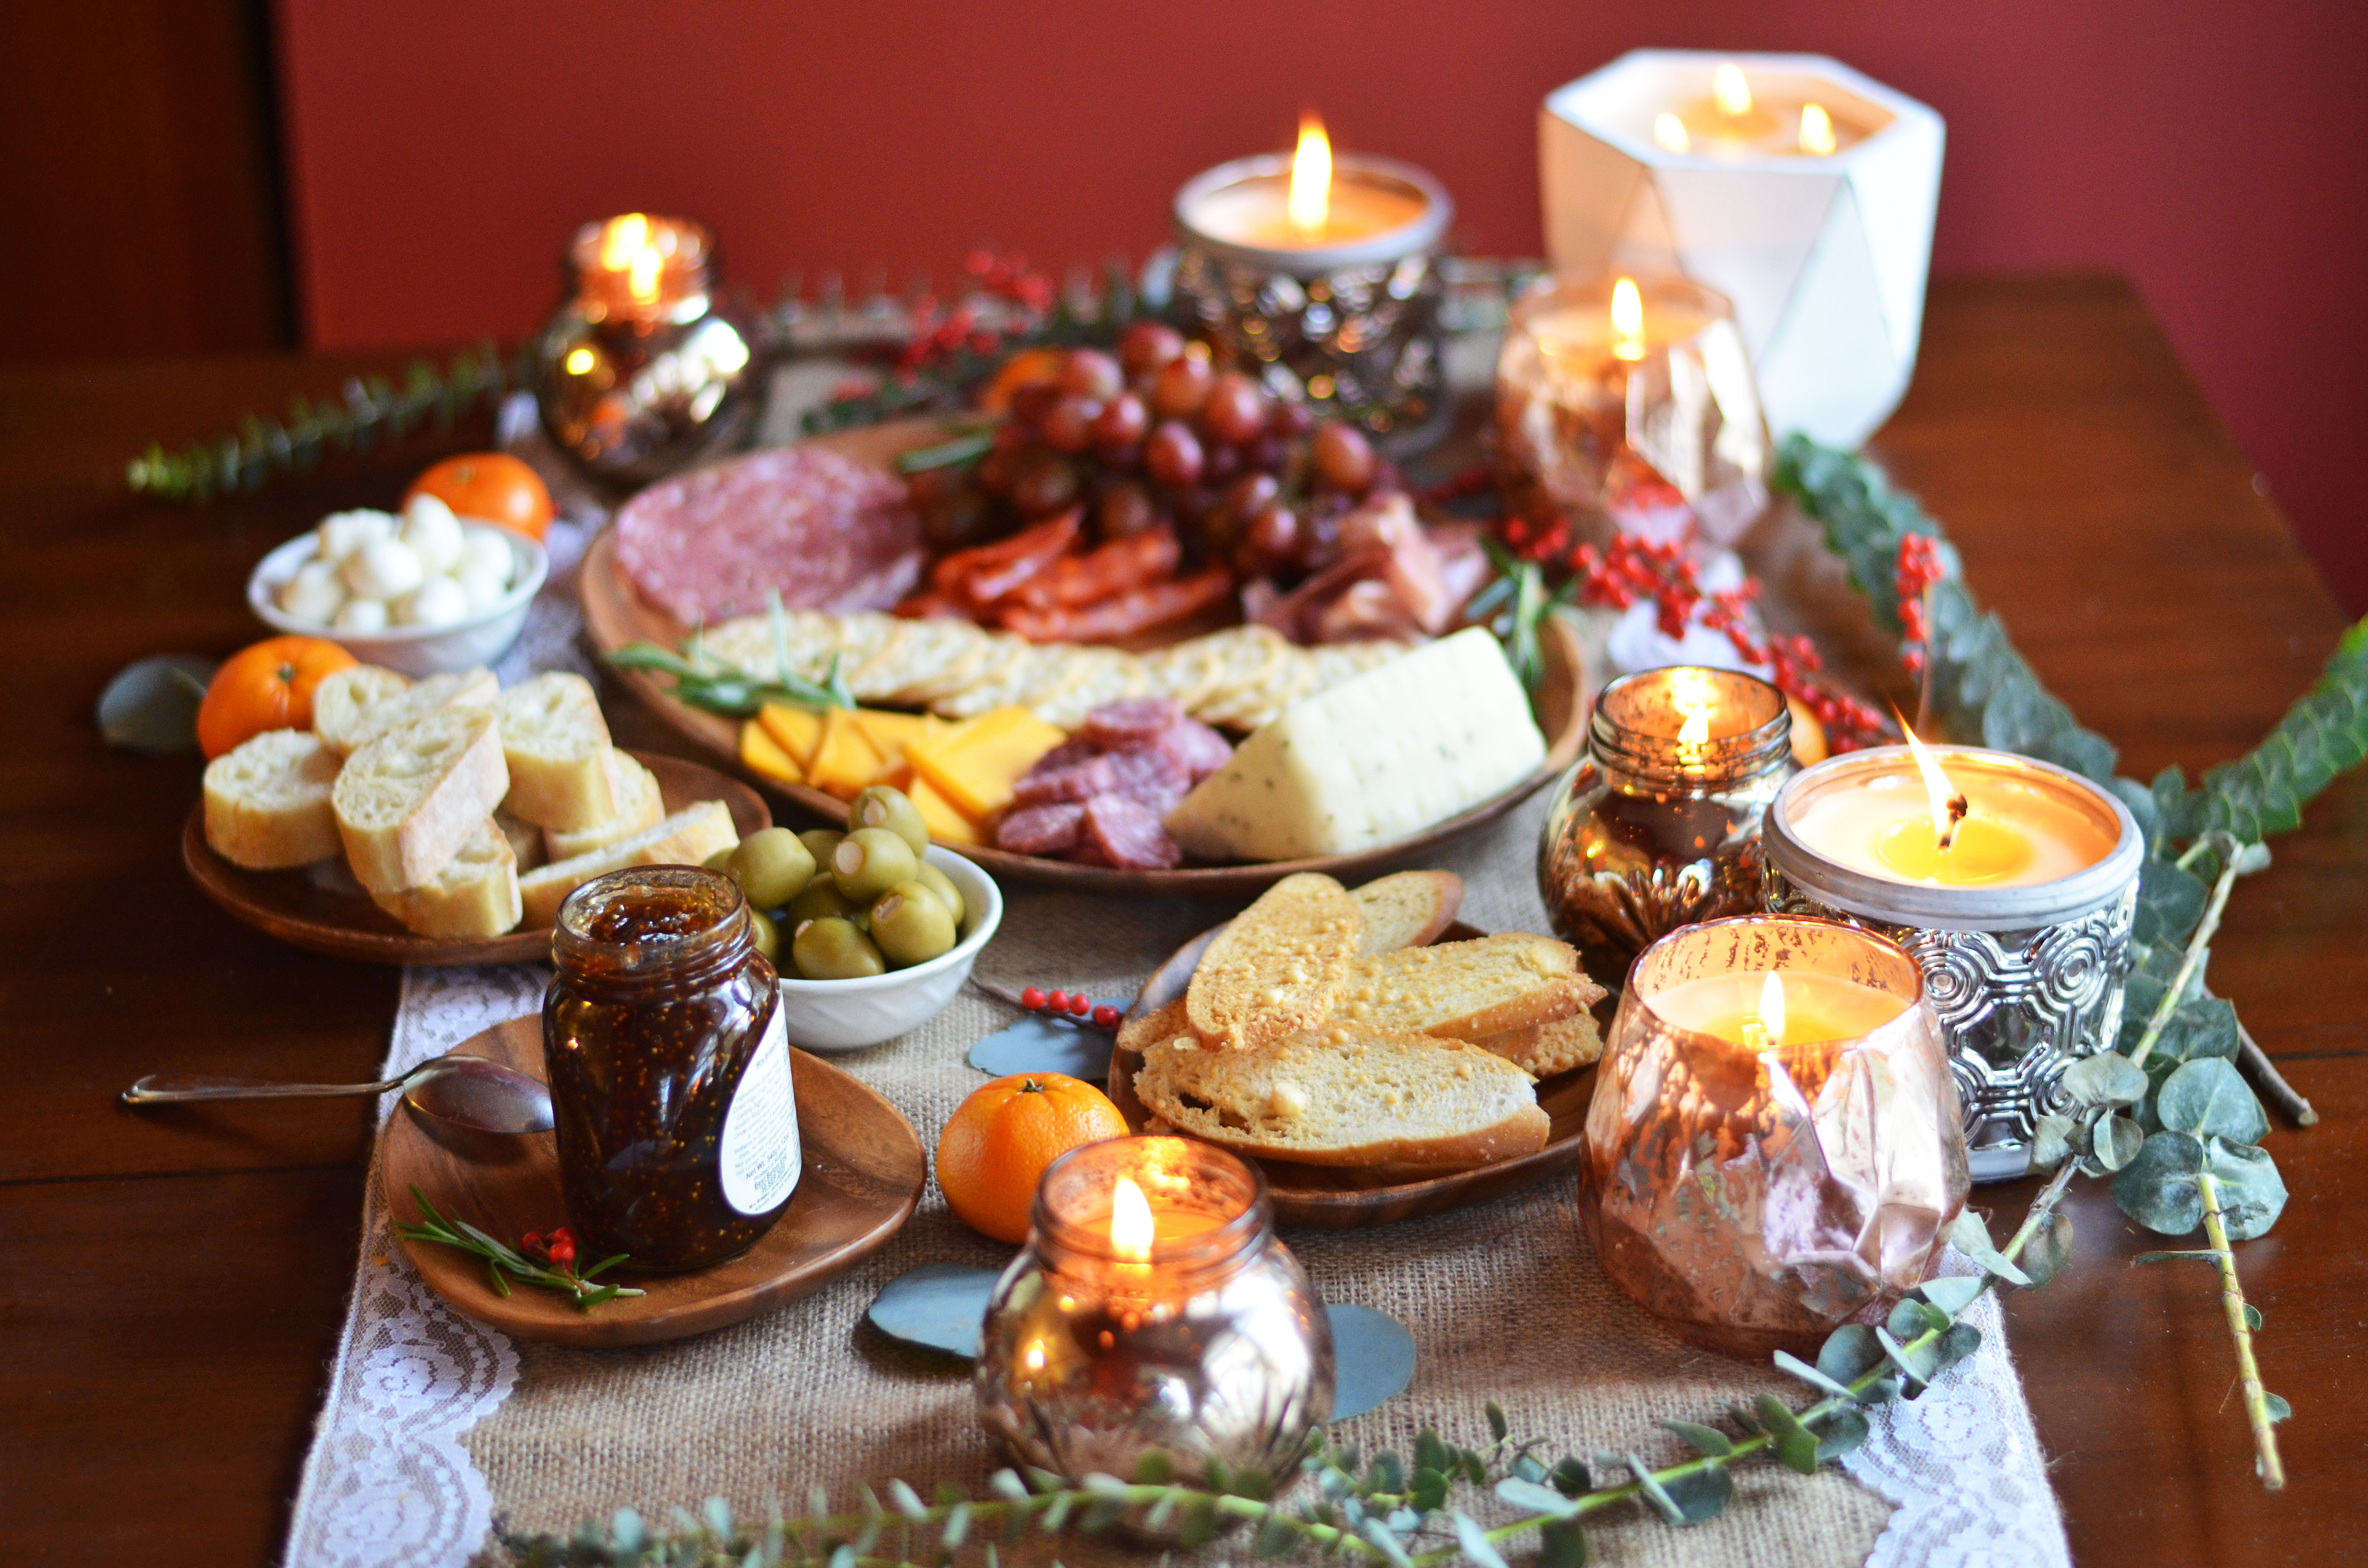 create perfect holiday charcuterie spread - meat and cheese plate | www.bylaurenm.com